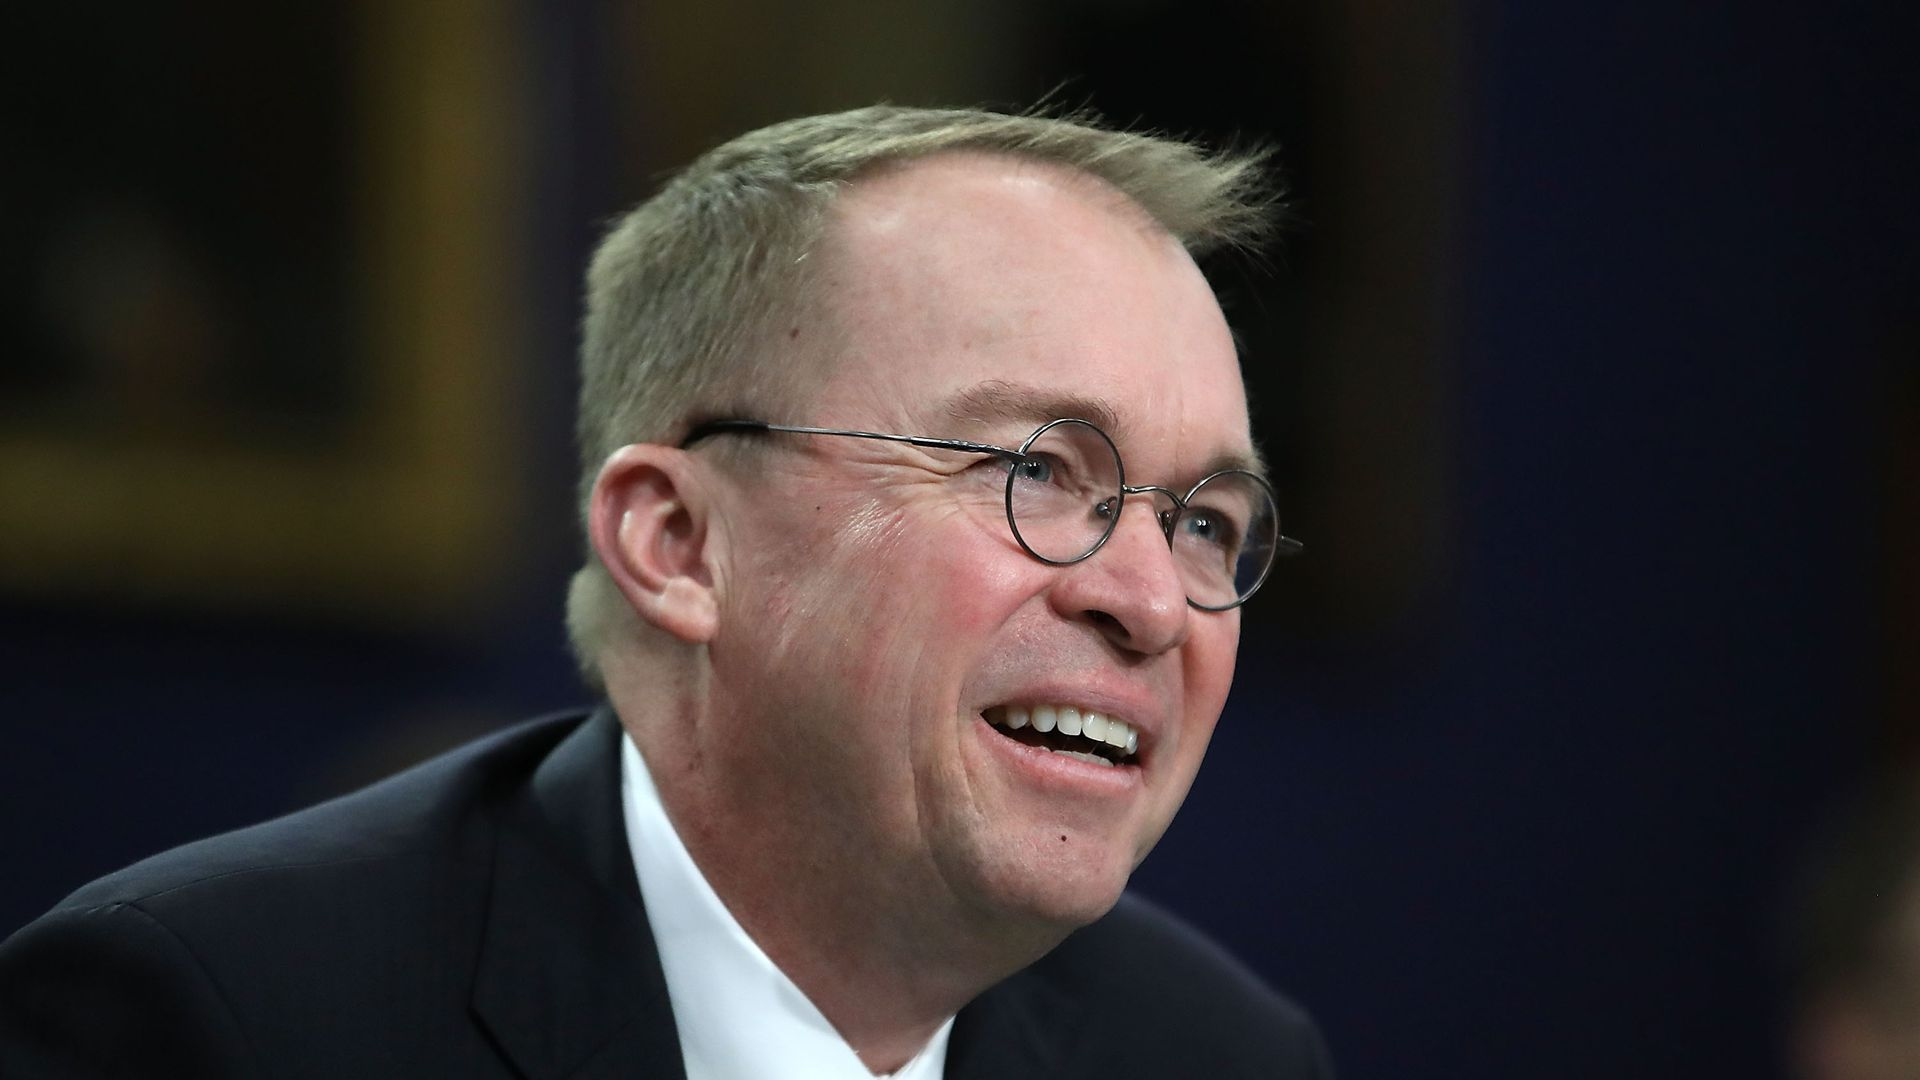 Mick Mulvaney wants to reshape the CPFB